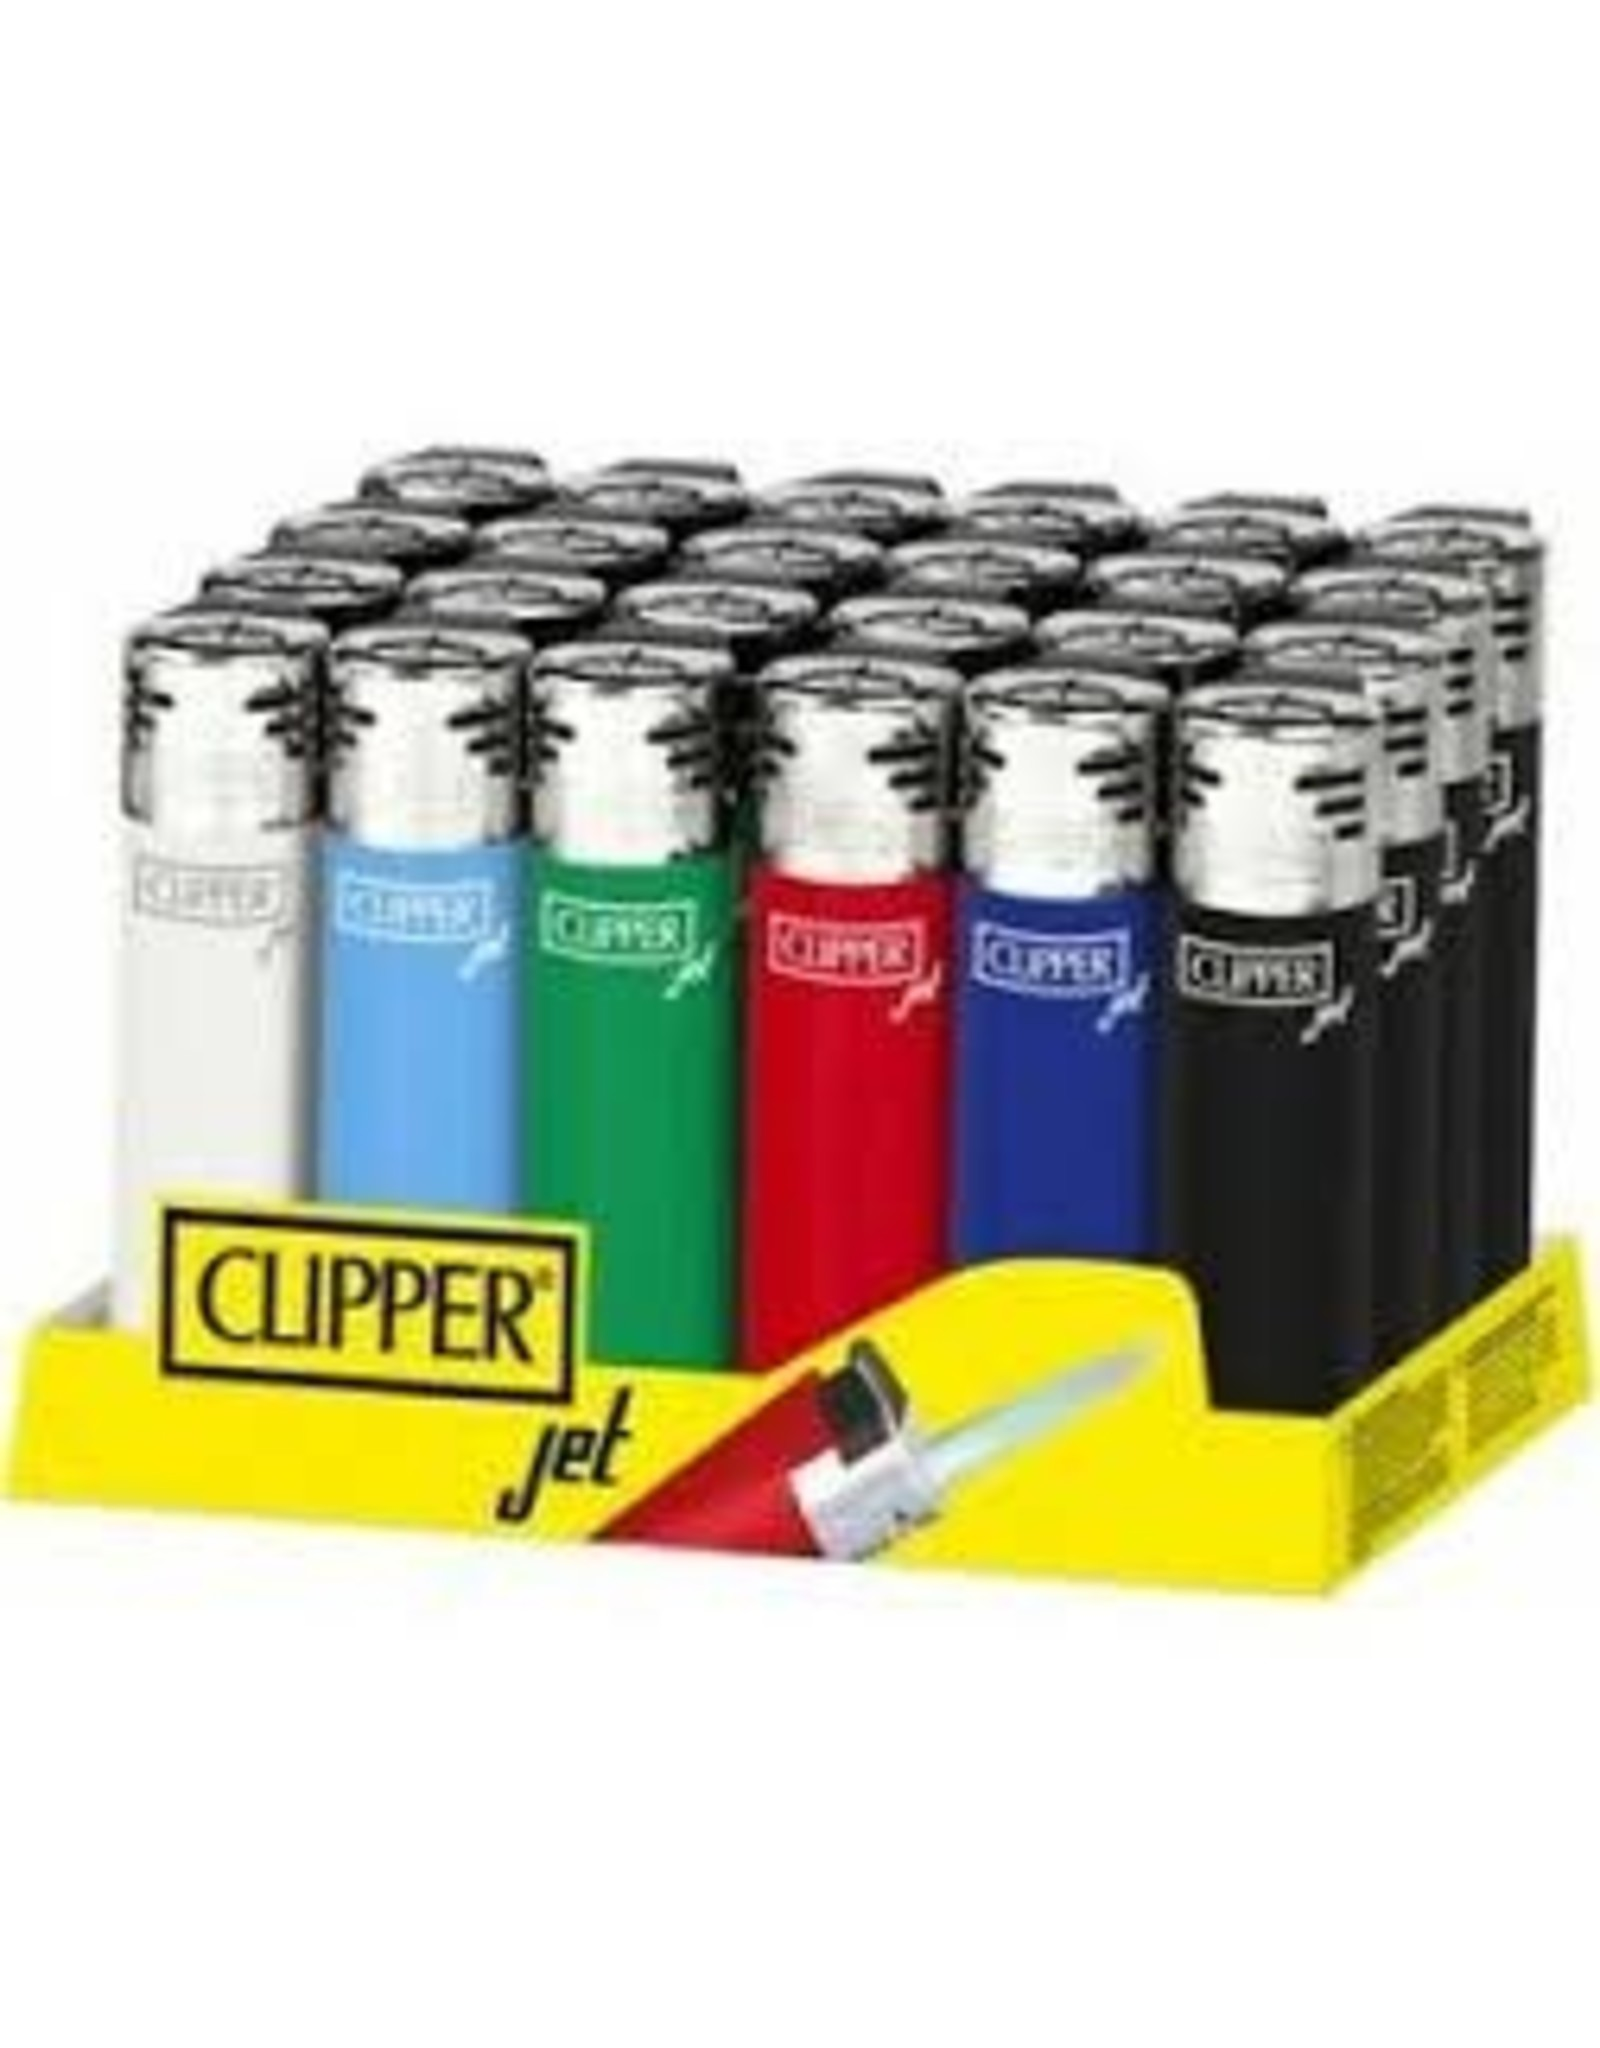 CLIPPER CLIPPER JET TORCH LIGHTER SOFT JET